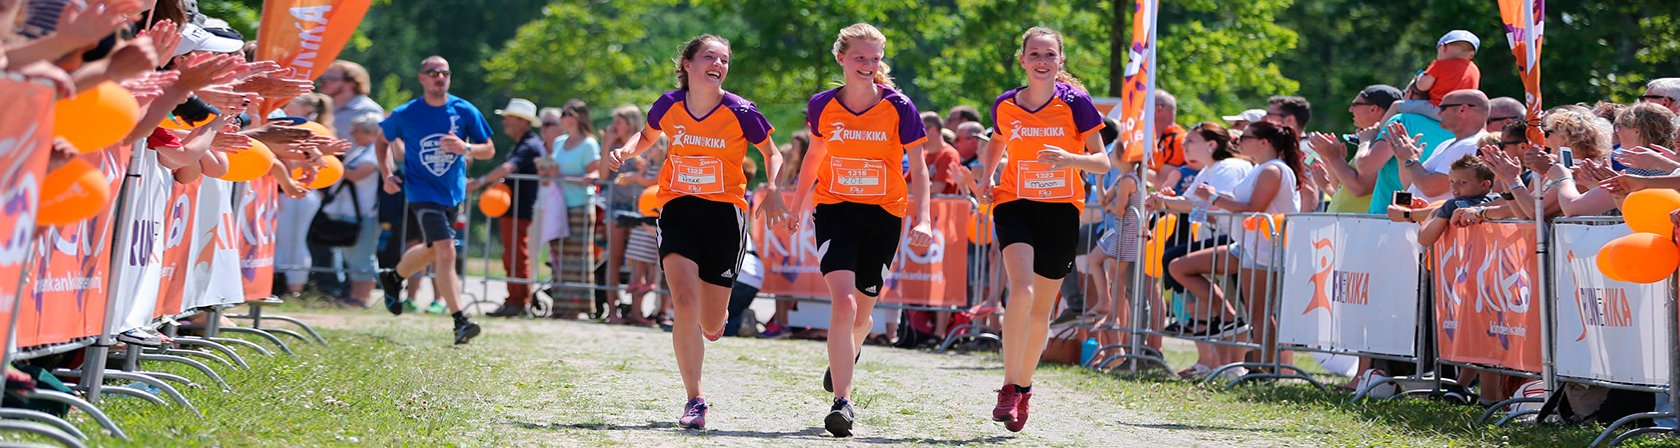 M2 steunt Run voor Kika met eventdressing